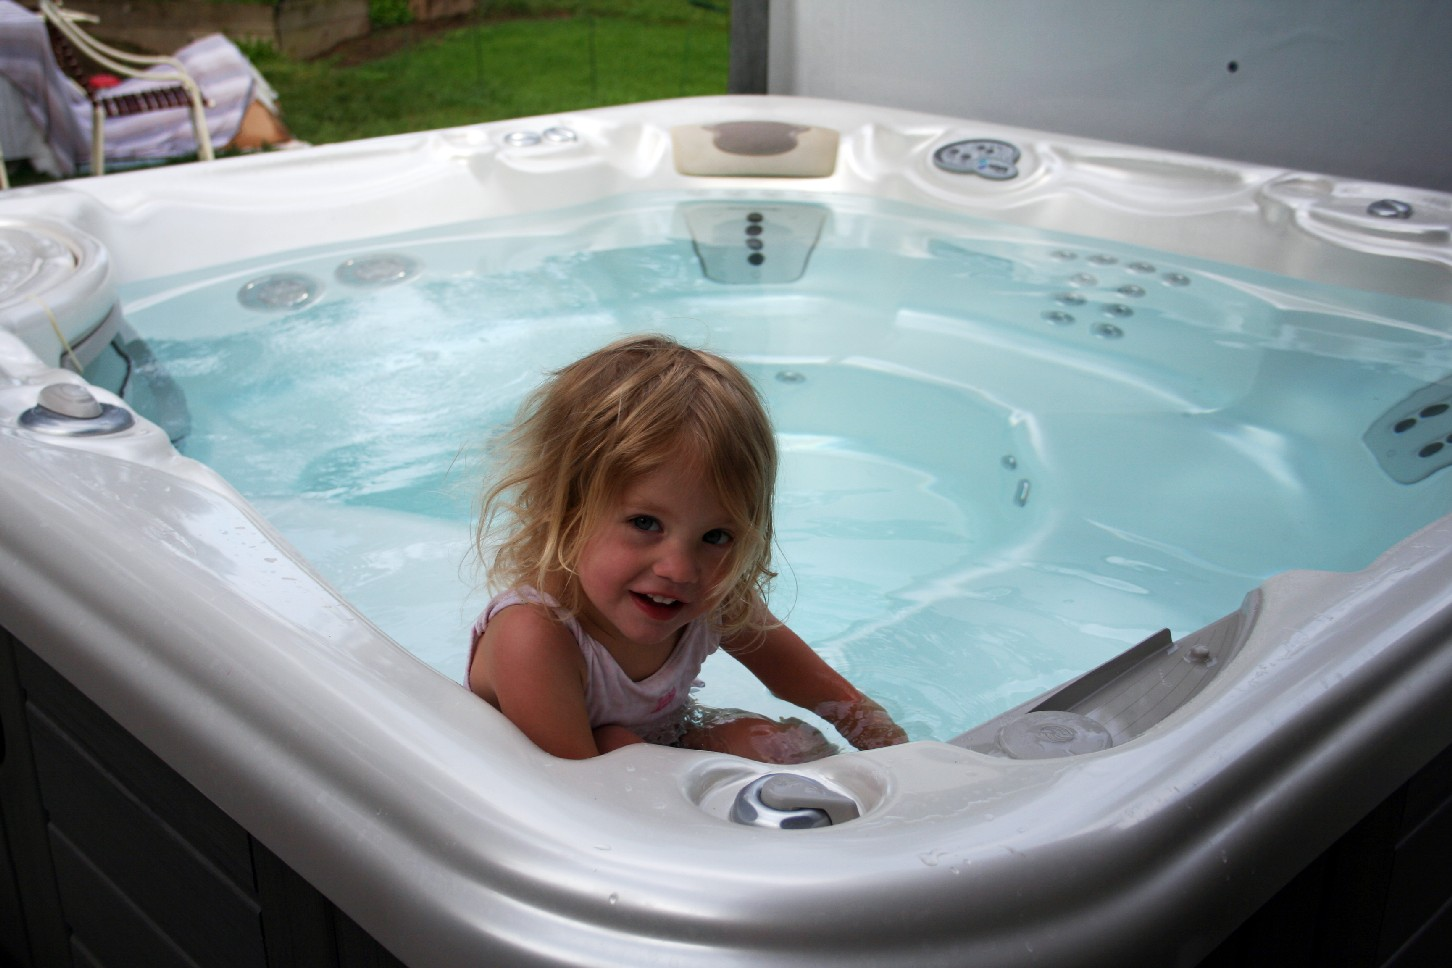 Hot Tub Shopping? 8 Important Reasons to Take A Test Soak Before You Buy